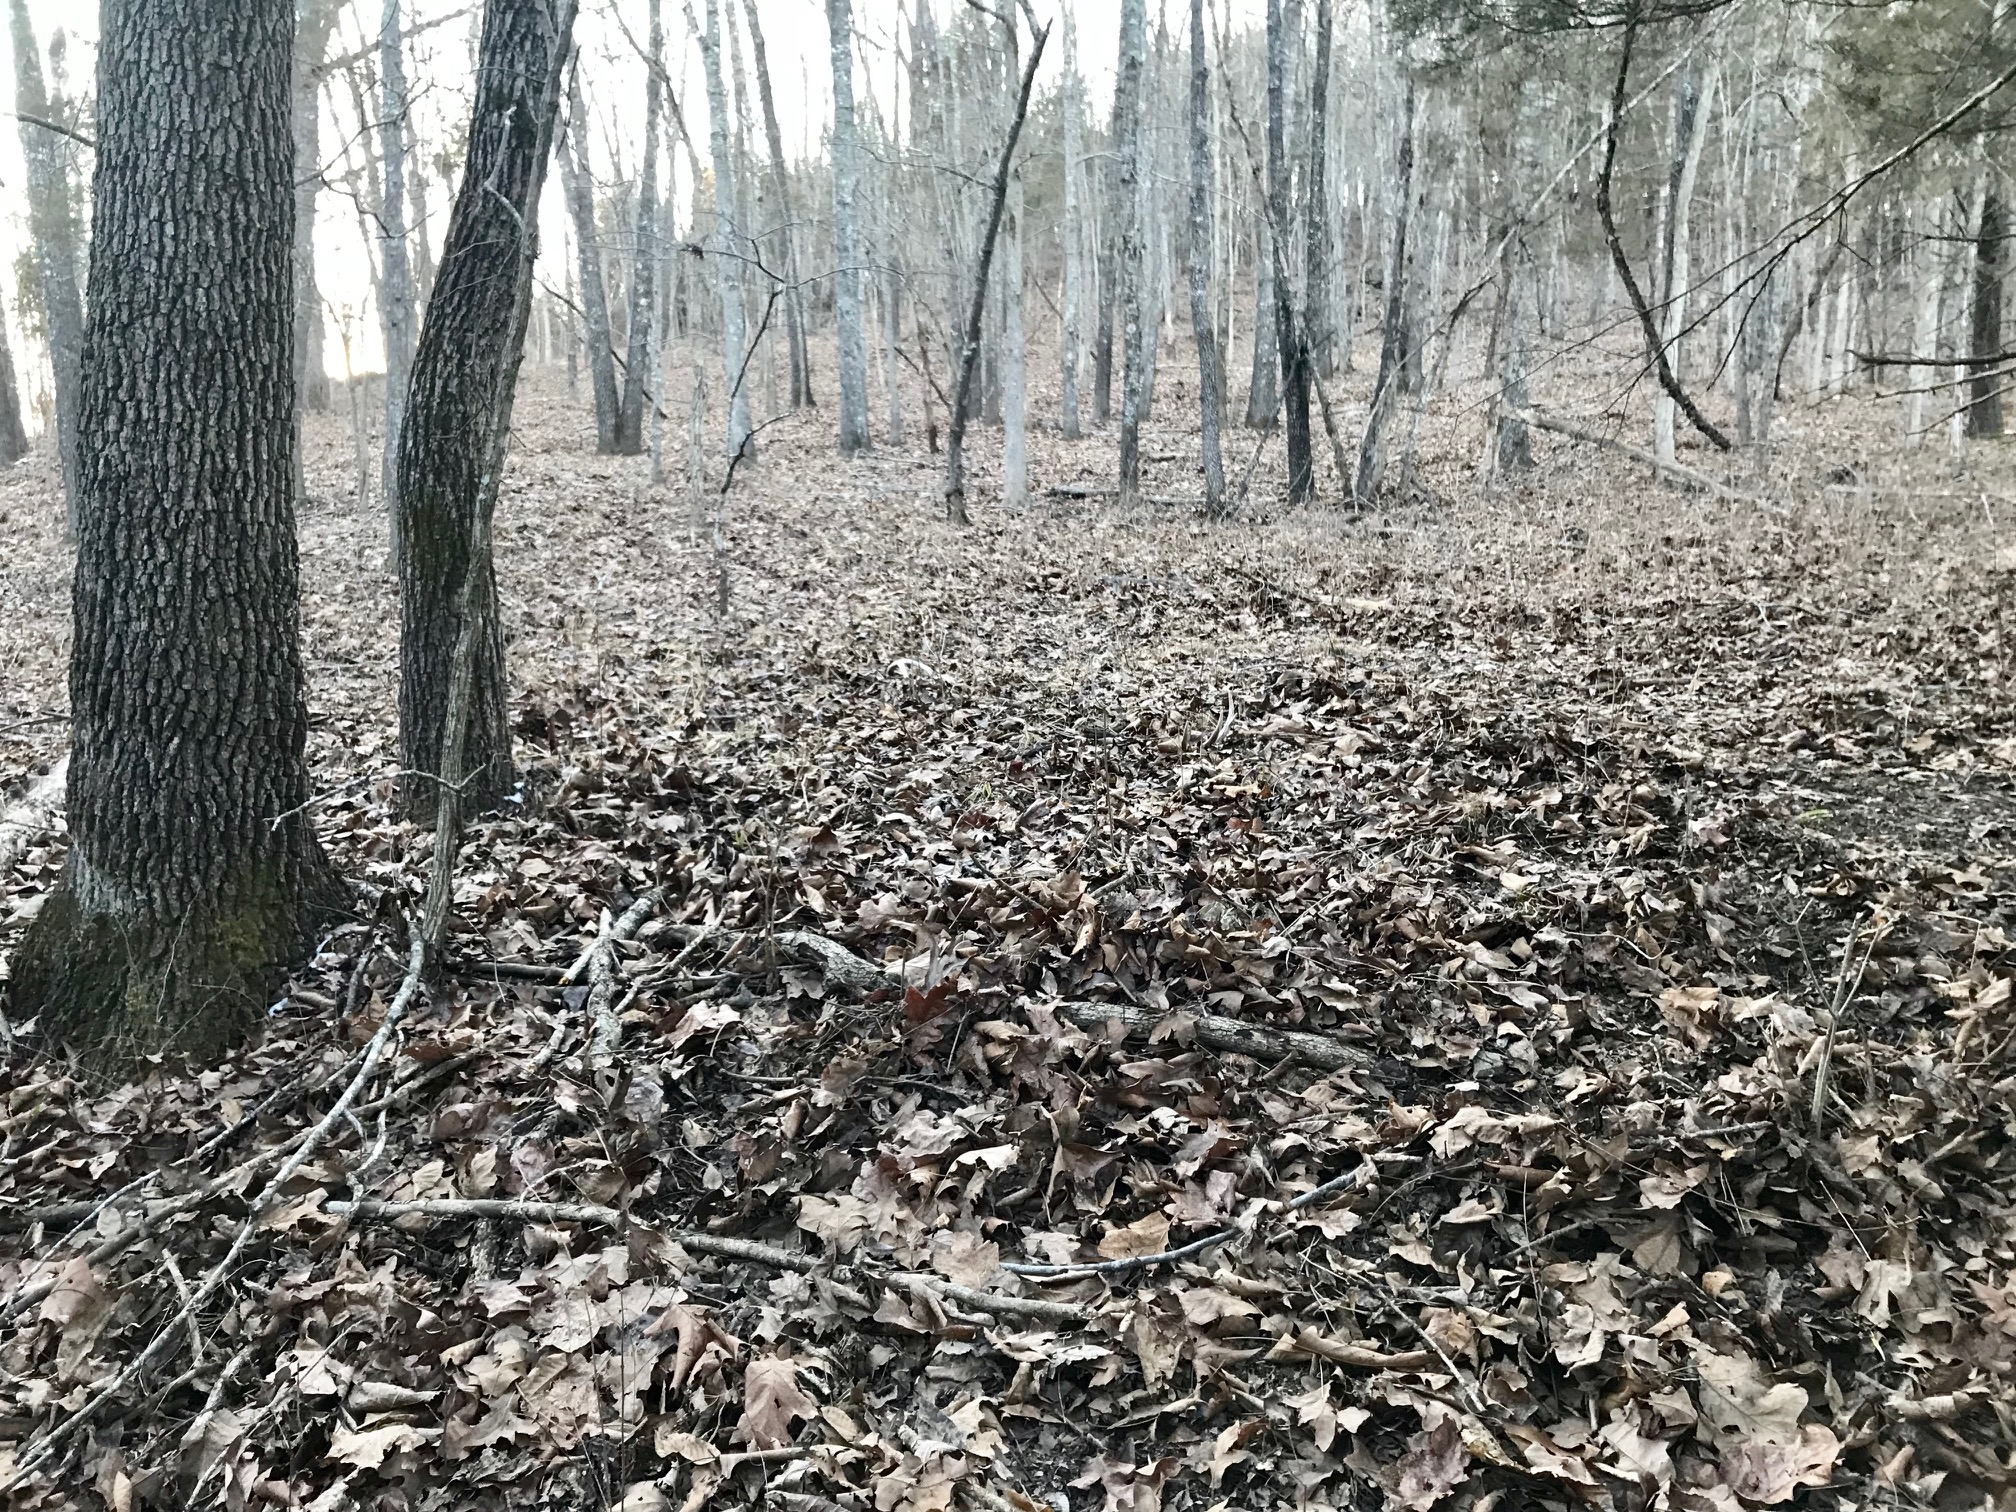 two white-tailed deer antlers on the ground amidst leaves in a forest